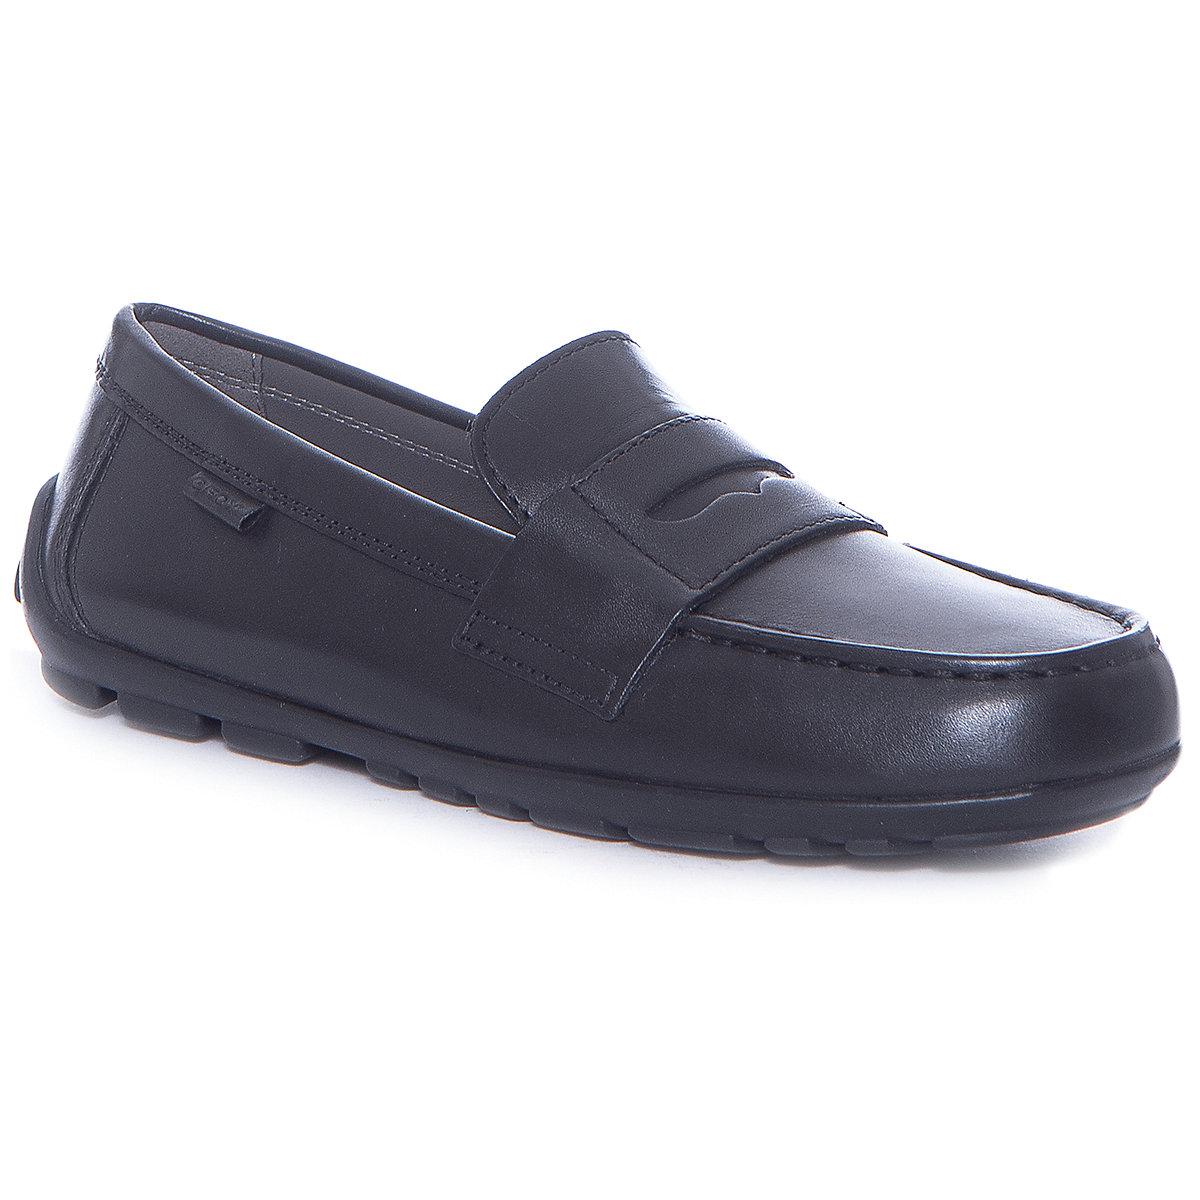 Фото - GEOX Children Casual Shoes 8786617 Boys for boy childrens spring/summer Leather school shoes MTpromo vankaring high heels 2018 spring autumn women pumps shoes round toe shoes woman dress party casual shoes pumps big size 34 43